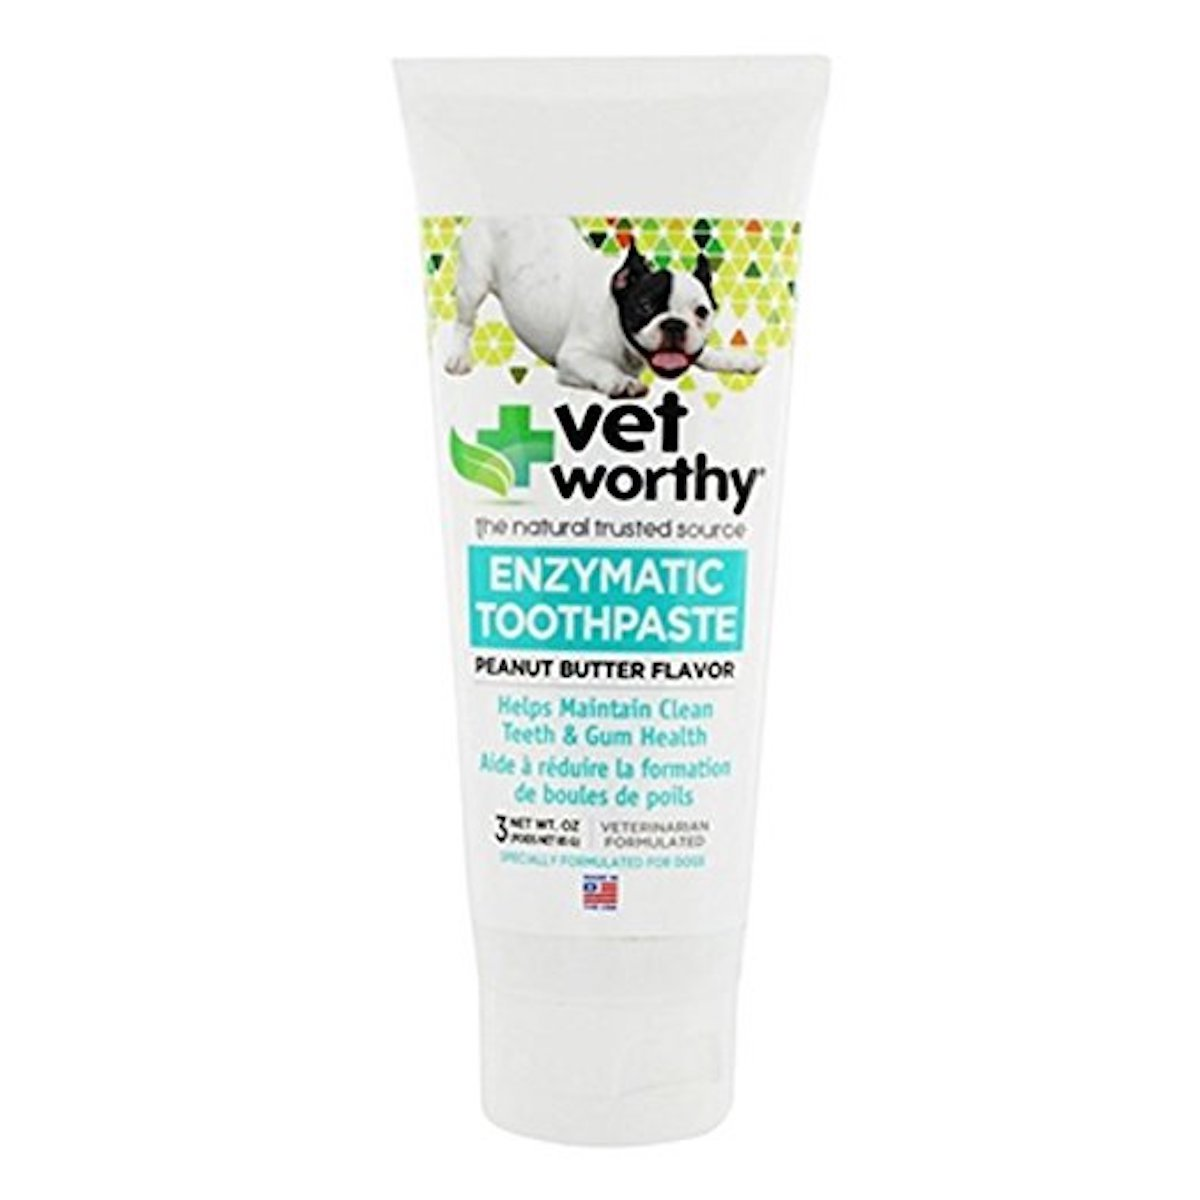 Enzymatic Toothpaste for Dogs Peanut Butter for Dental Care Clean Teeth and Gum Health Made in USA by VetWorth Dog Toothpaste